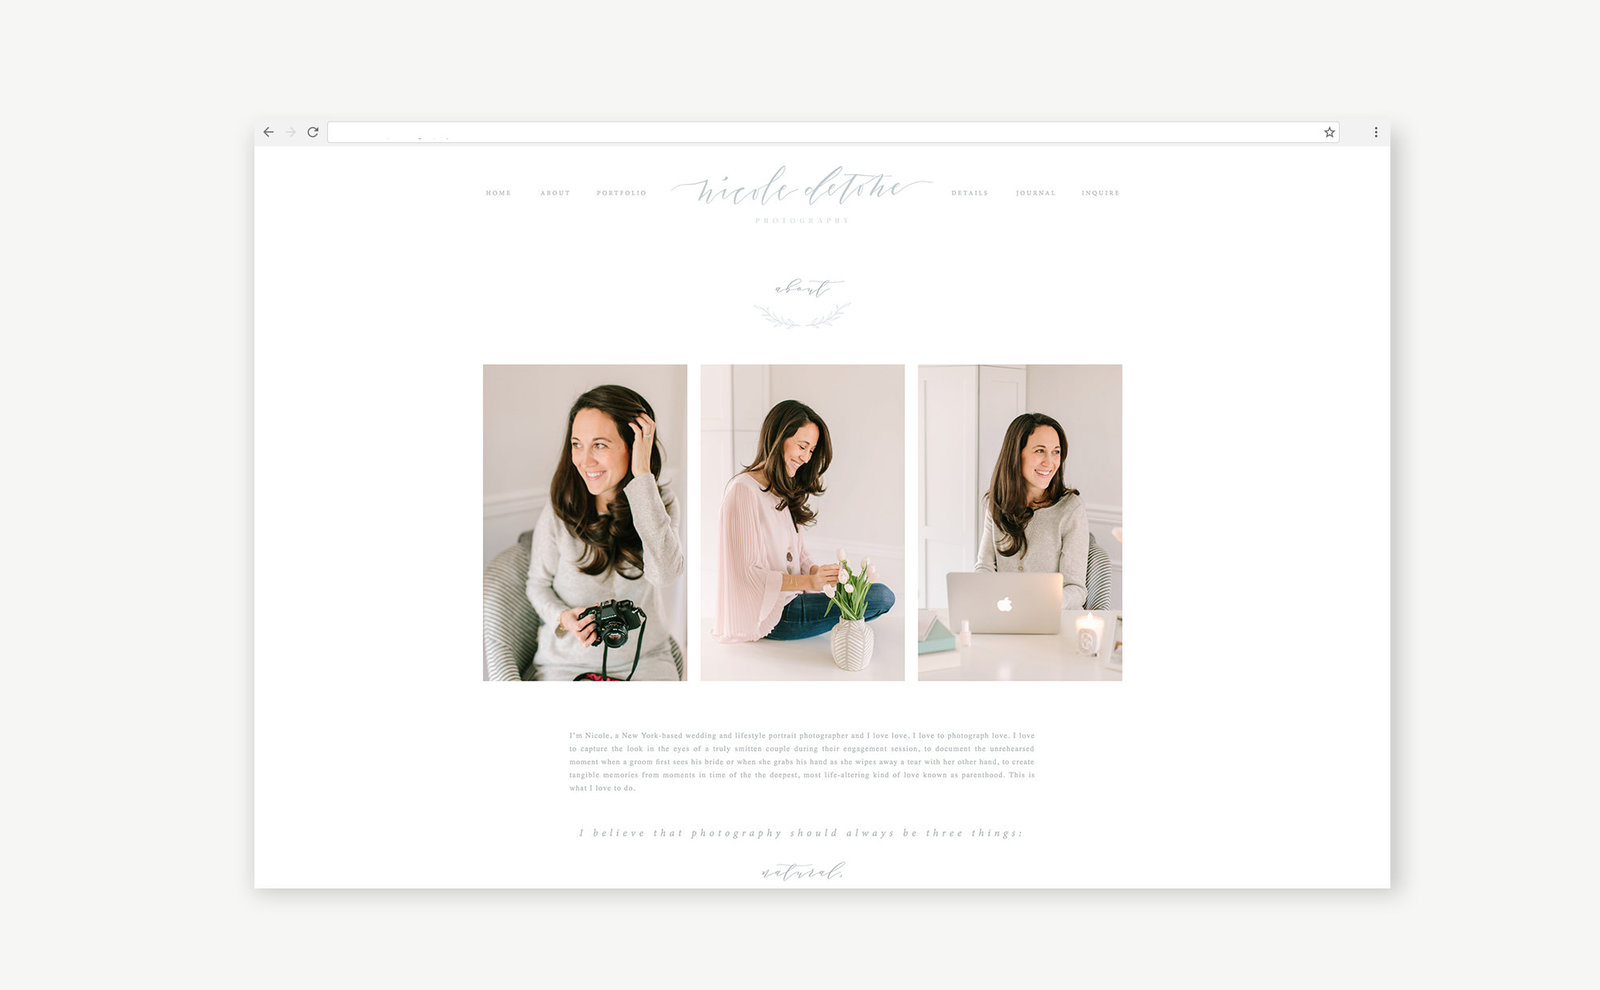 branding-for-photographers-web-design-logo-showit5-custom-fine-art-photographer-ribbon-and-ink-nicole-detone-07